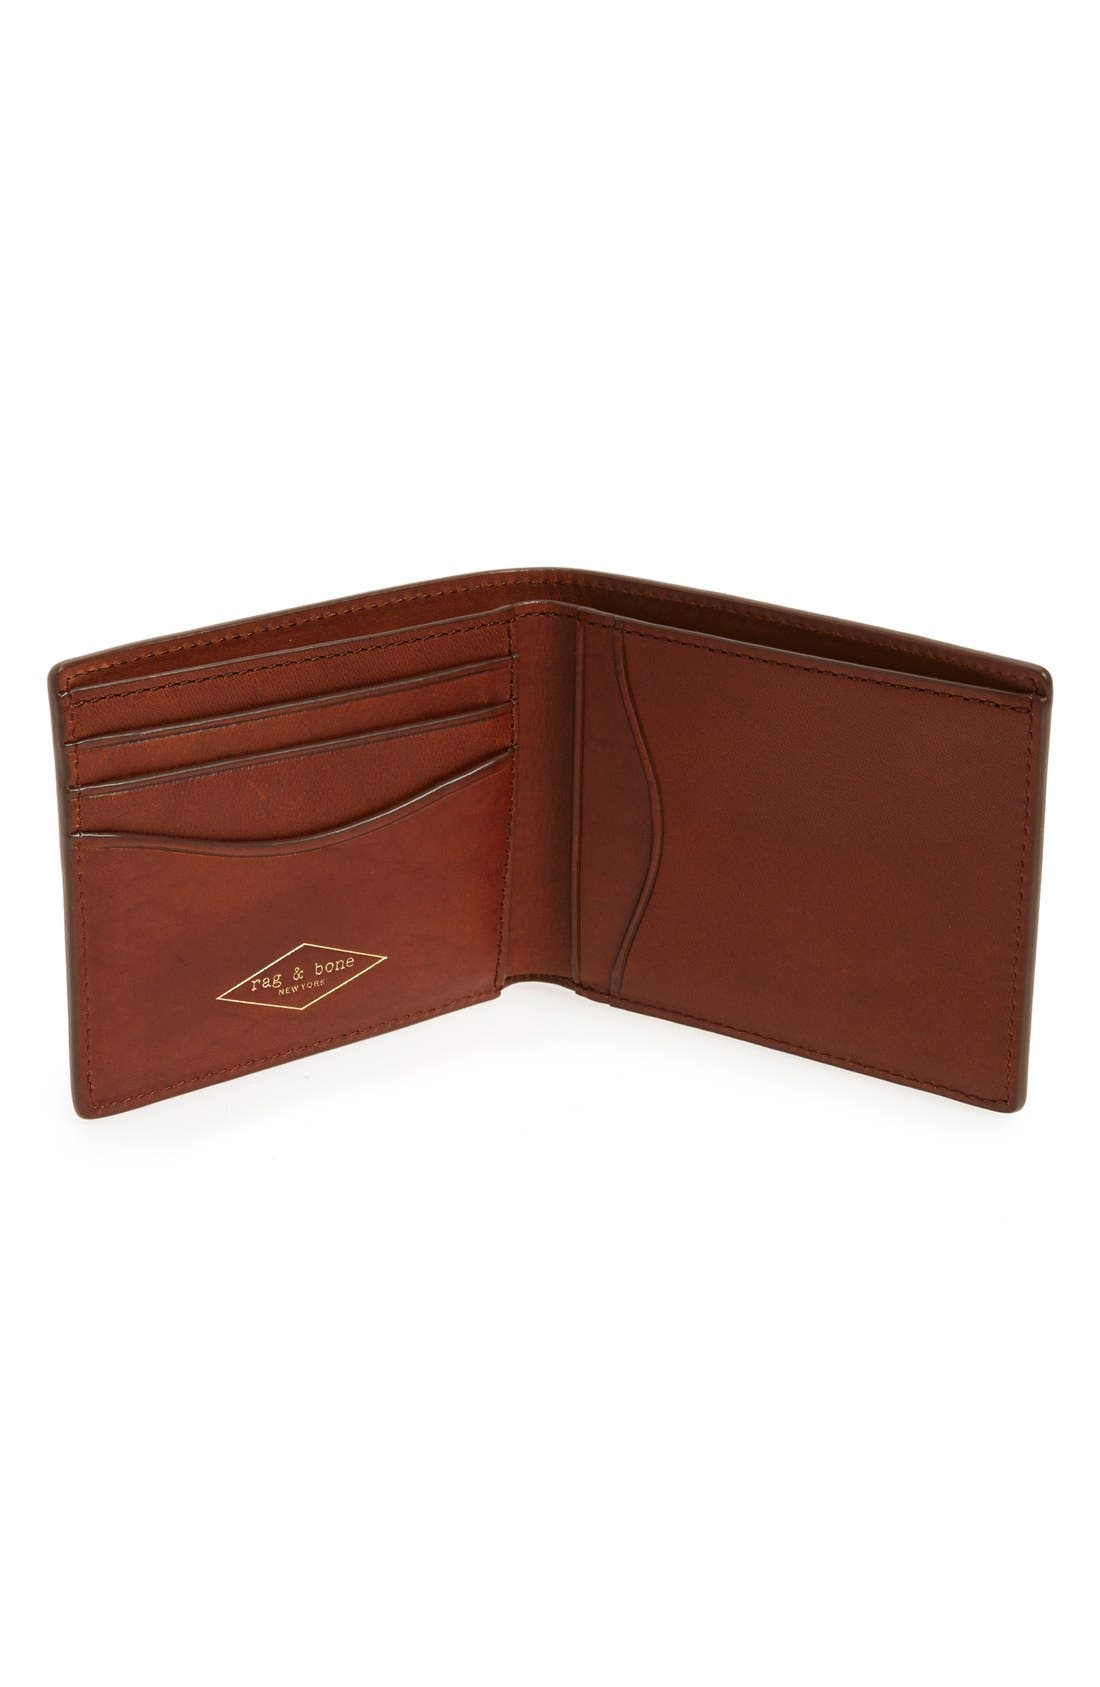 Hampshire Leather Bifold Wallet,                             Alternate thumbnail 4, color,